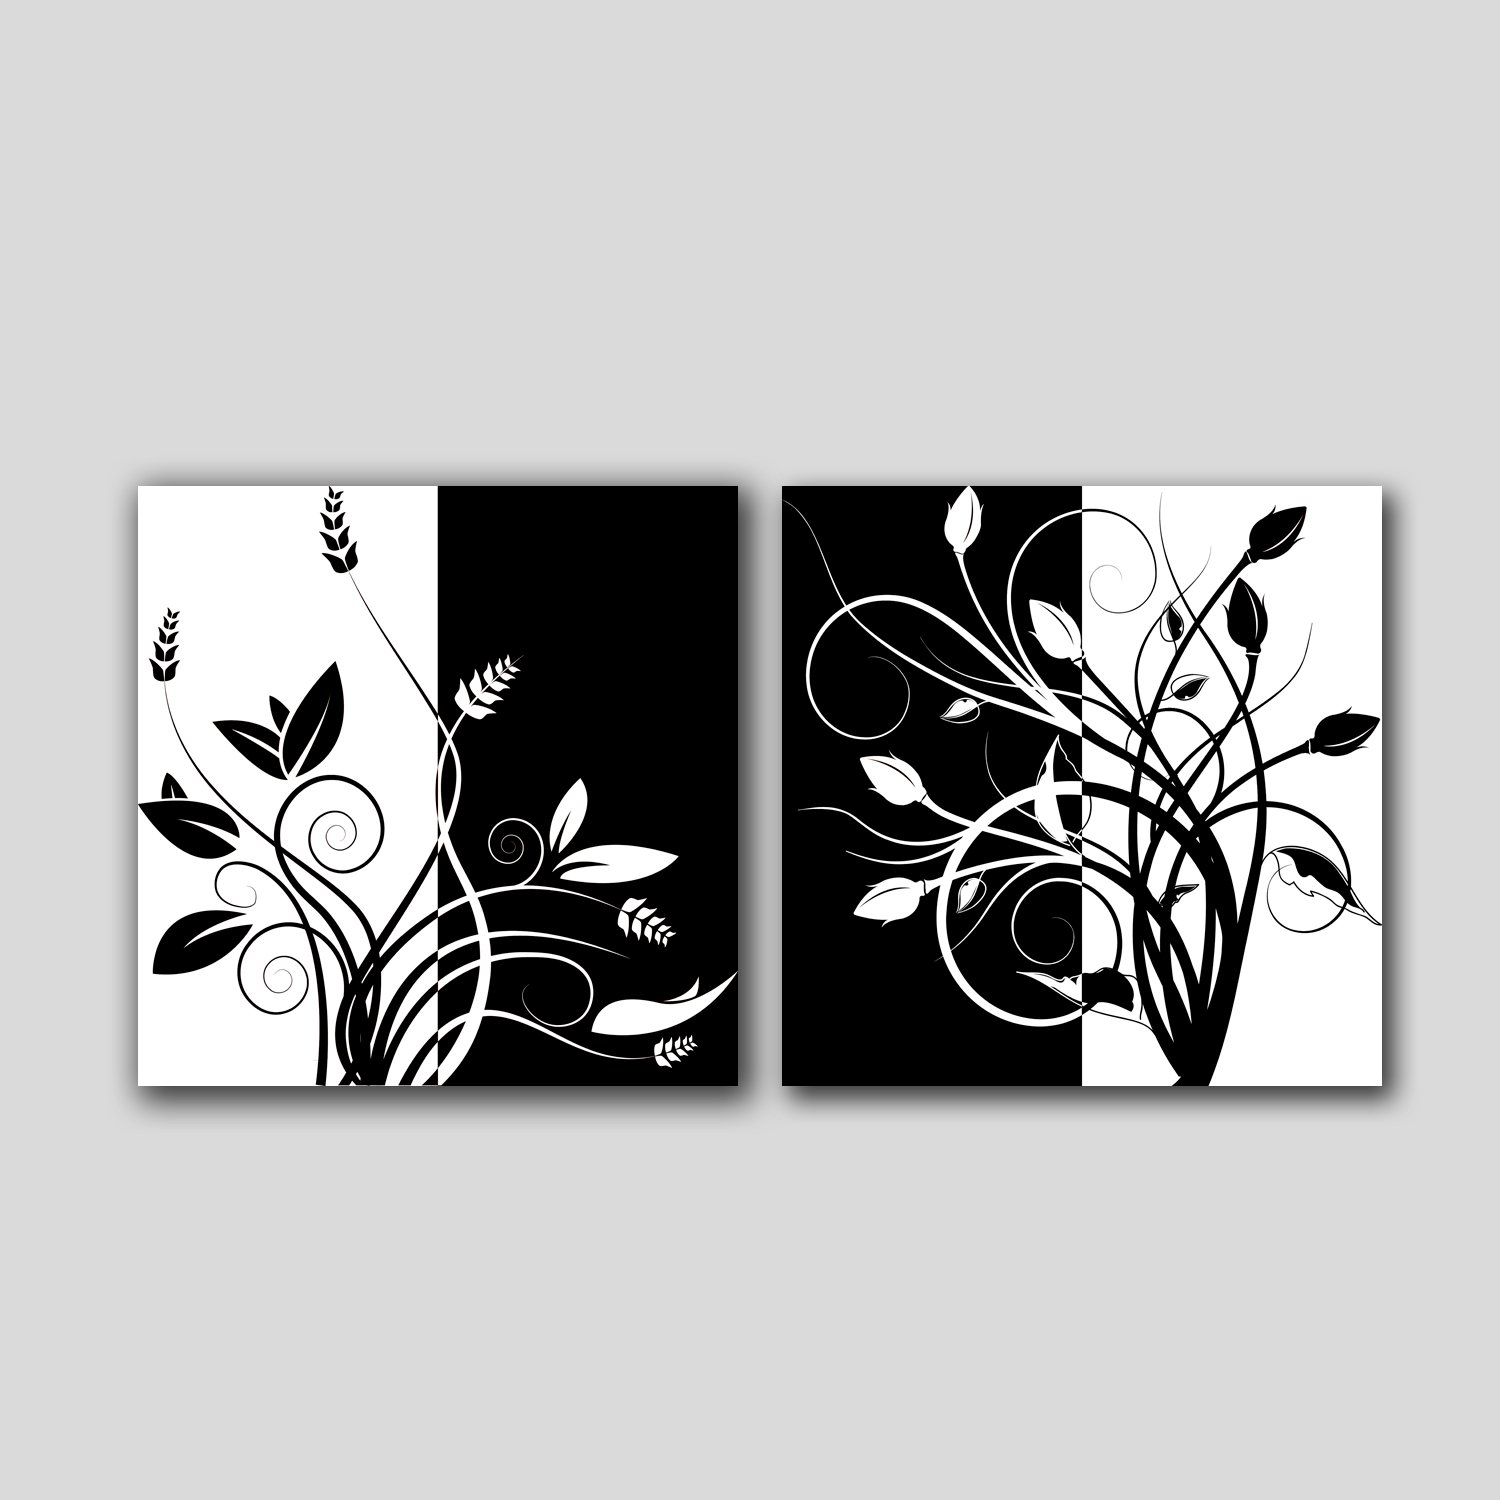 Lemon Tree Art Huge Canvas Print Wall Art Black And White Abstract Art Trees Pictures Modern Home Decoration Painting Set Of 2 Each Is 50 50cm